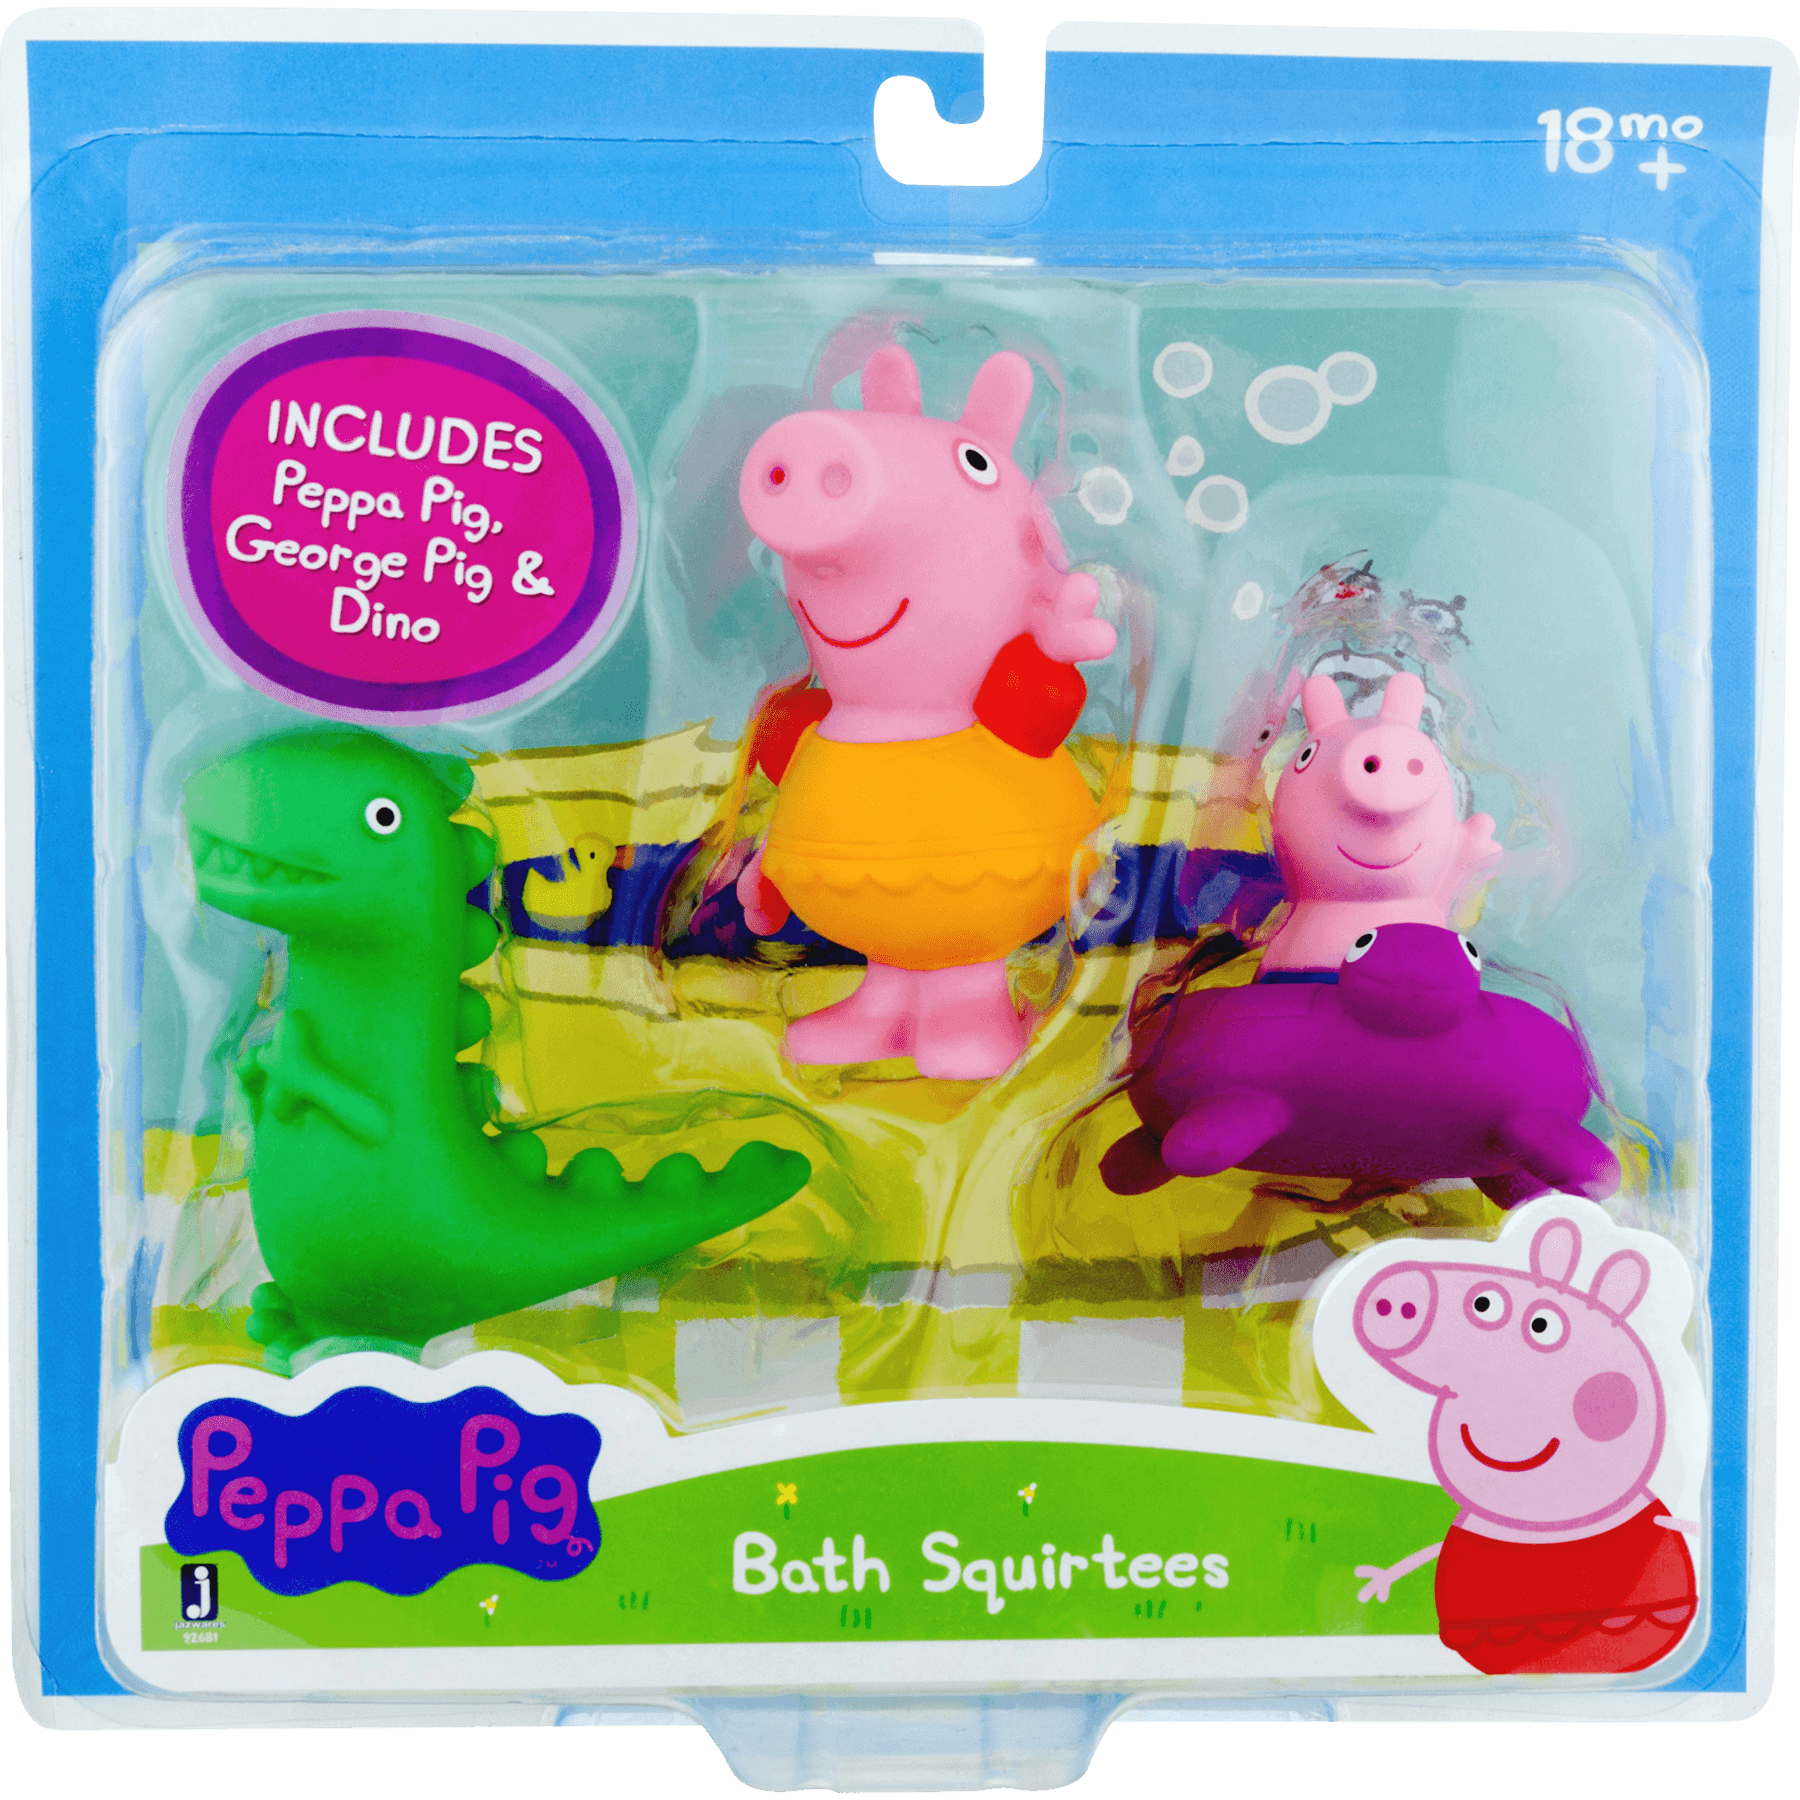 Peppa Pig Bath Squirtees